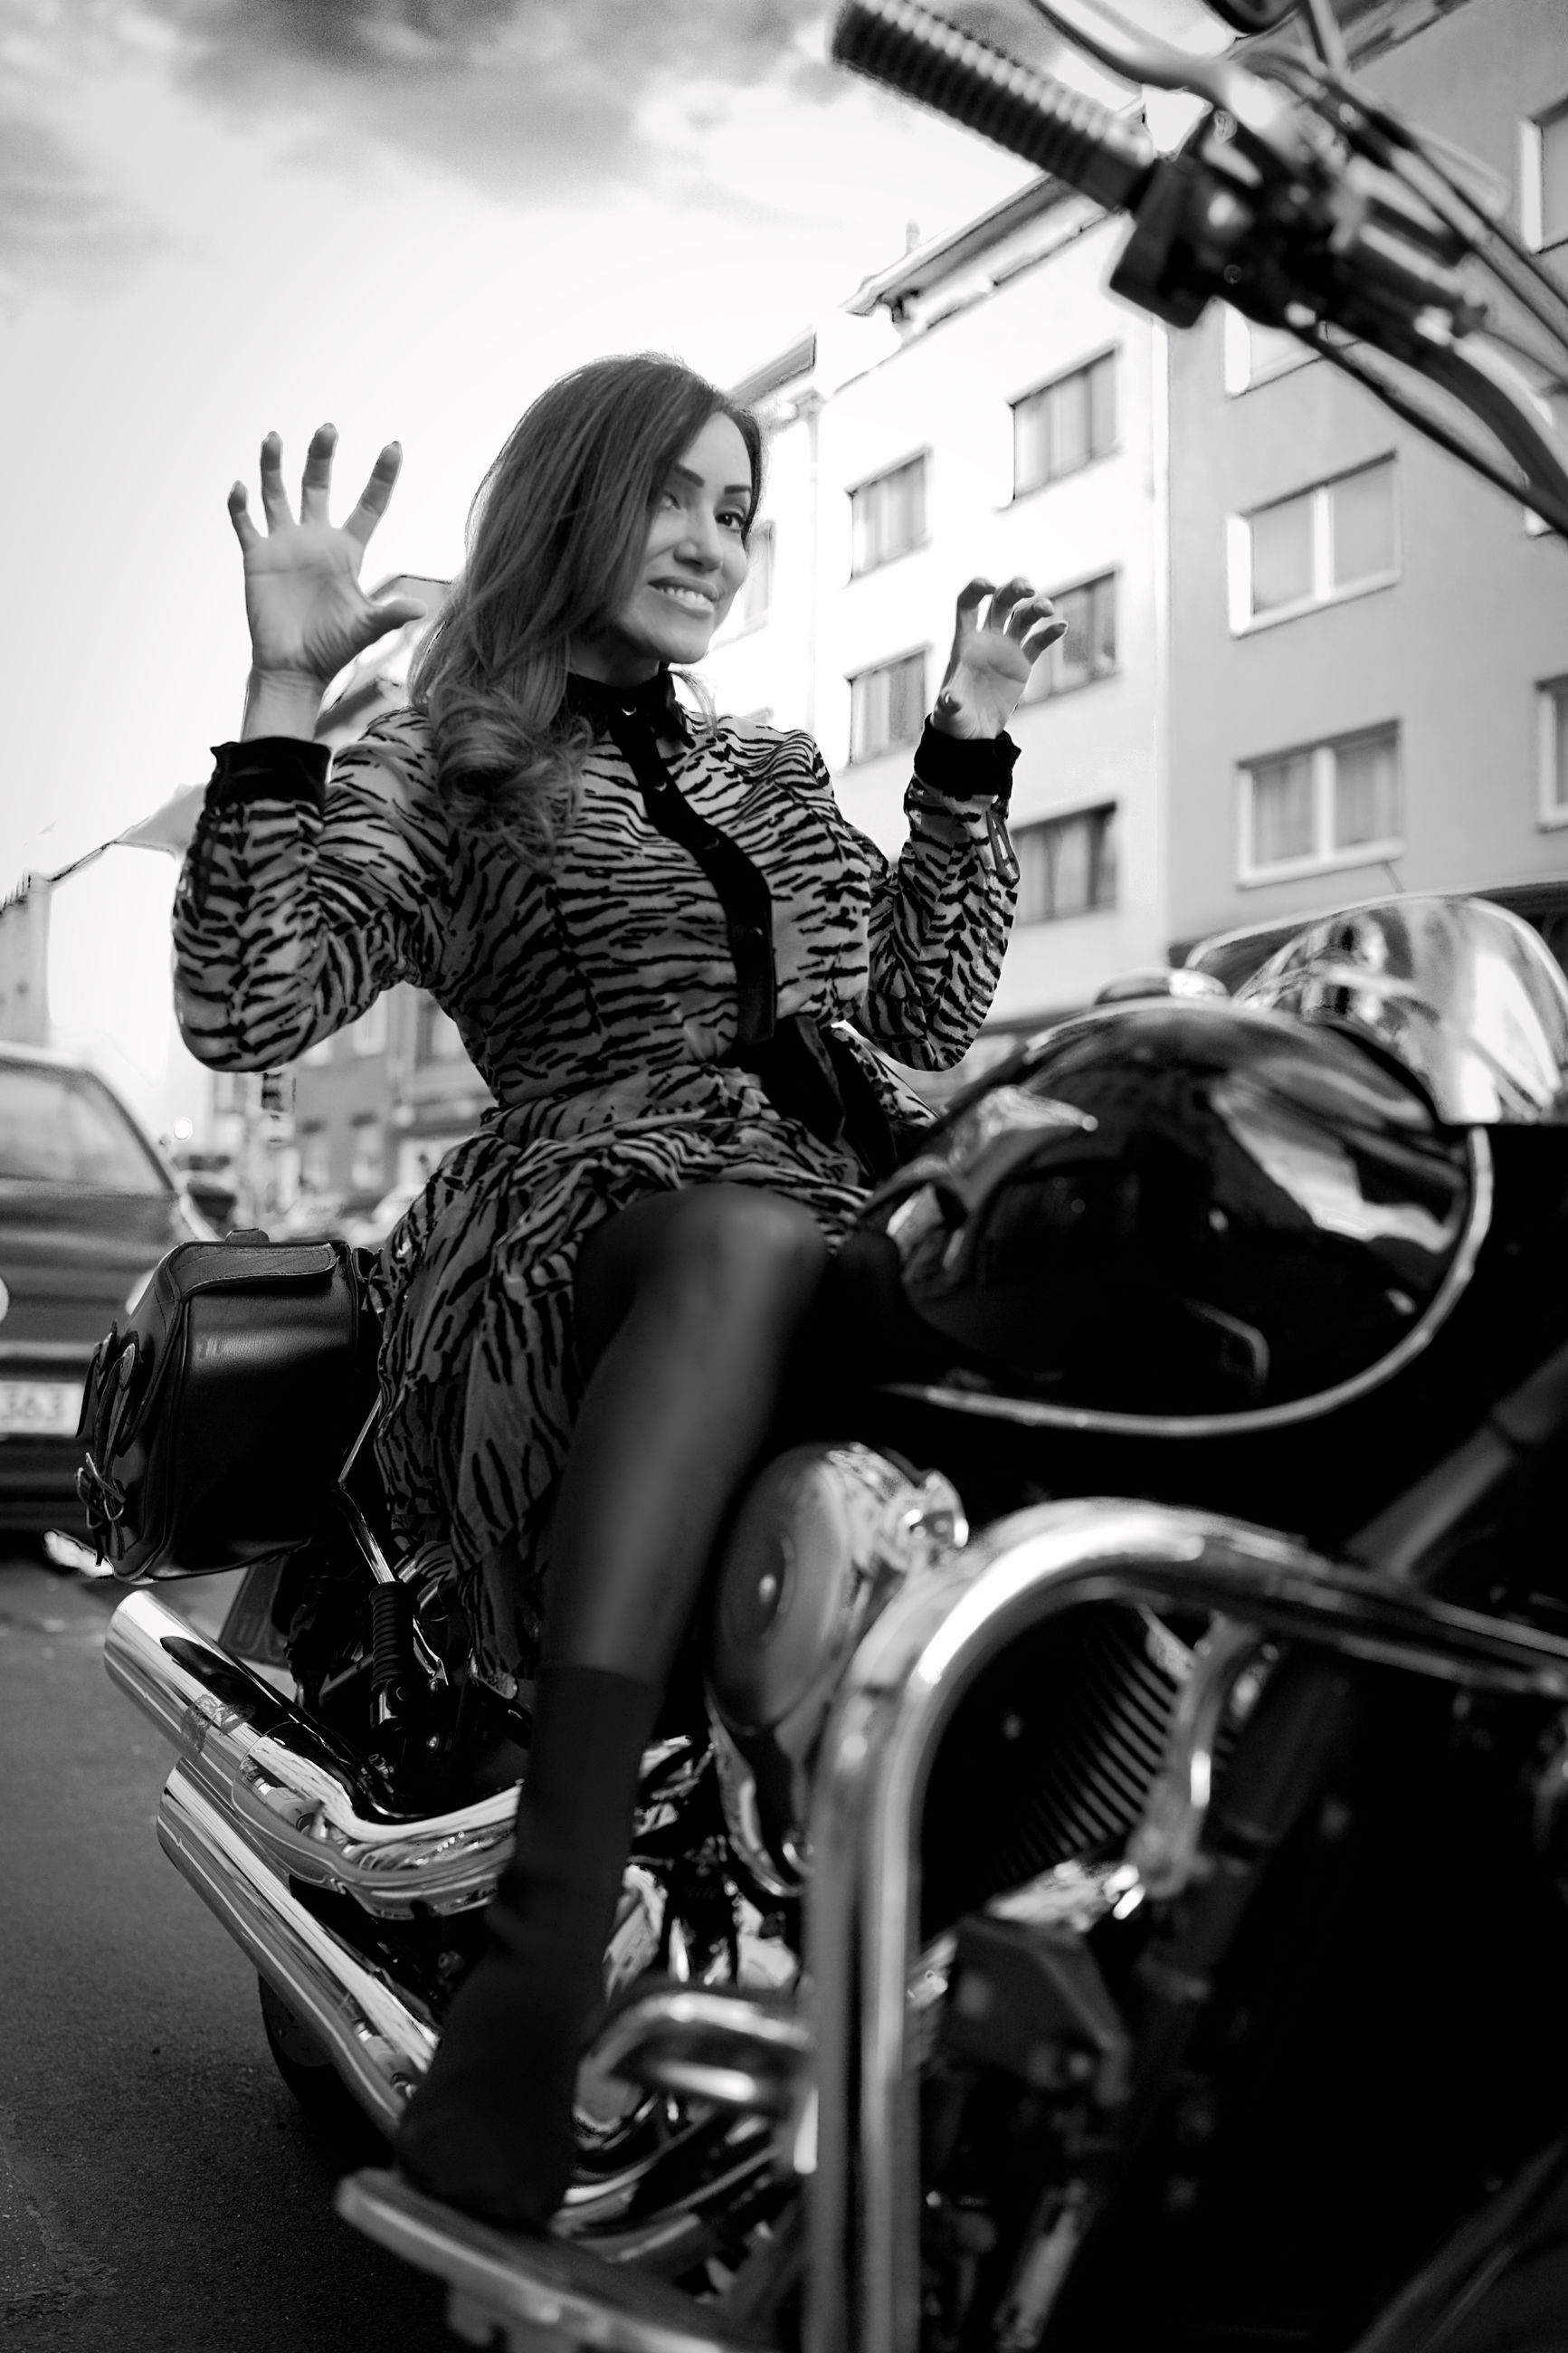 adult, transportation, women, mode of transportation, one person, black and white, motorcycle, black, architecture, fashion, city, young adult, monochrome, female, lifestyles, monochrome photography, vehicle, sky, travel, sitting, casual clothing, clothing, built structure, land vehicle, leisure activity, full length, activity, street, building exterior, city life, long hair, motor vehicle, nature, outdoors, emotion, car, person, hairstyle